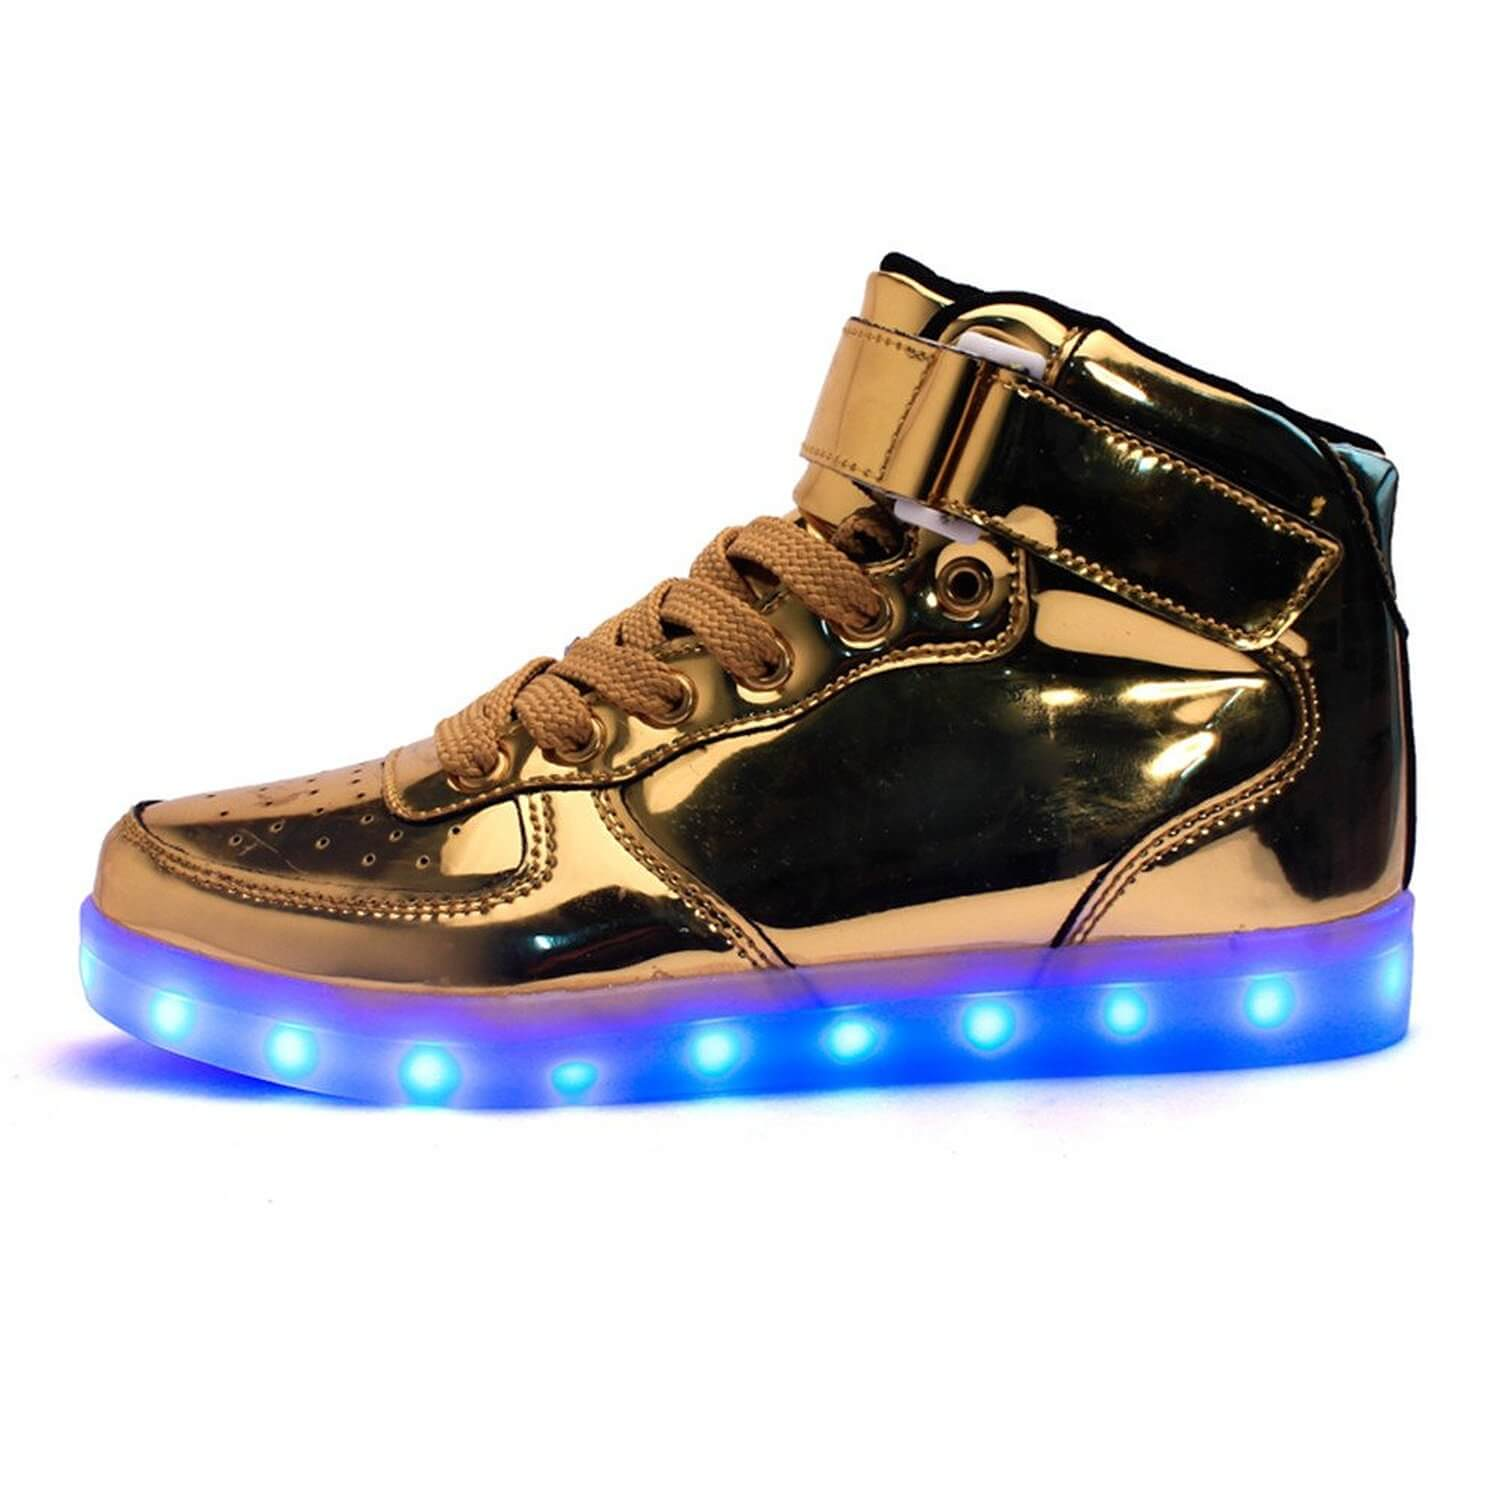 Mens Gold Shoes For Sale